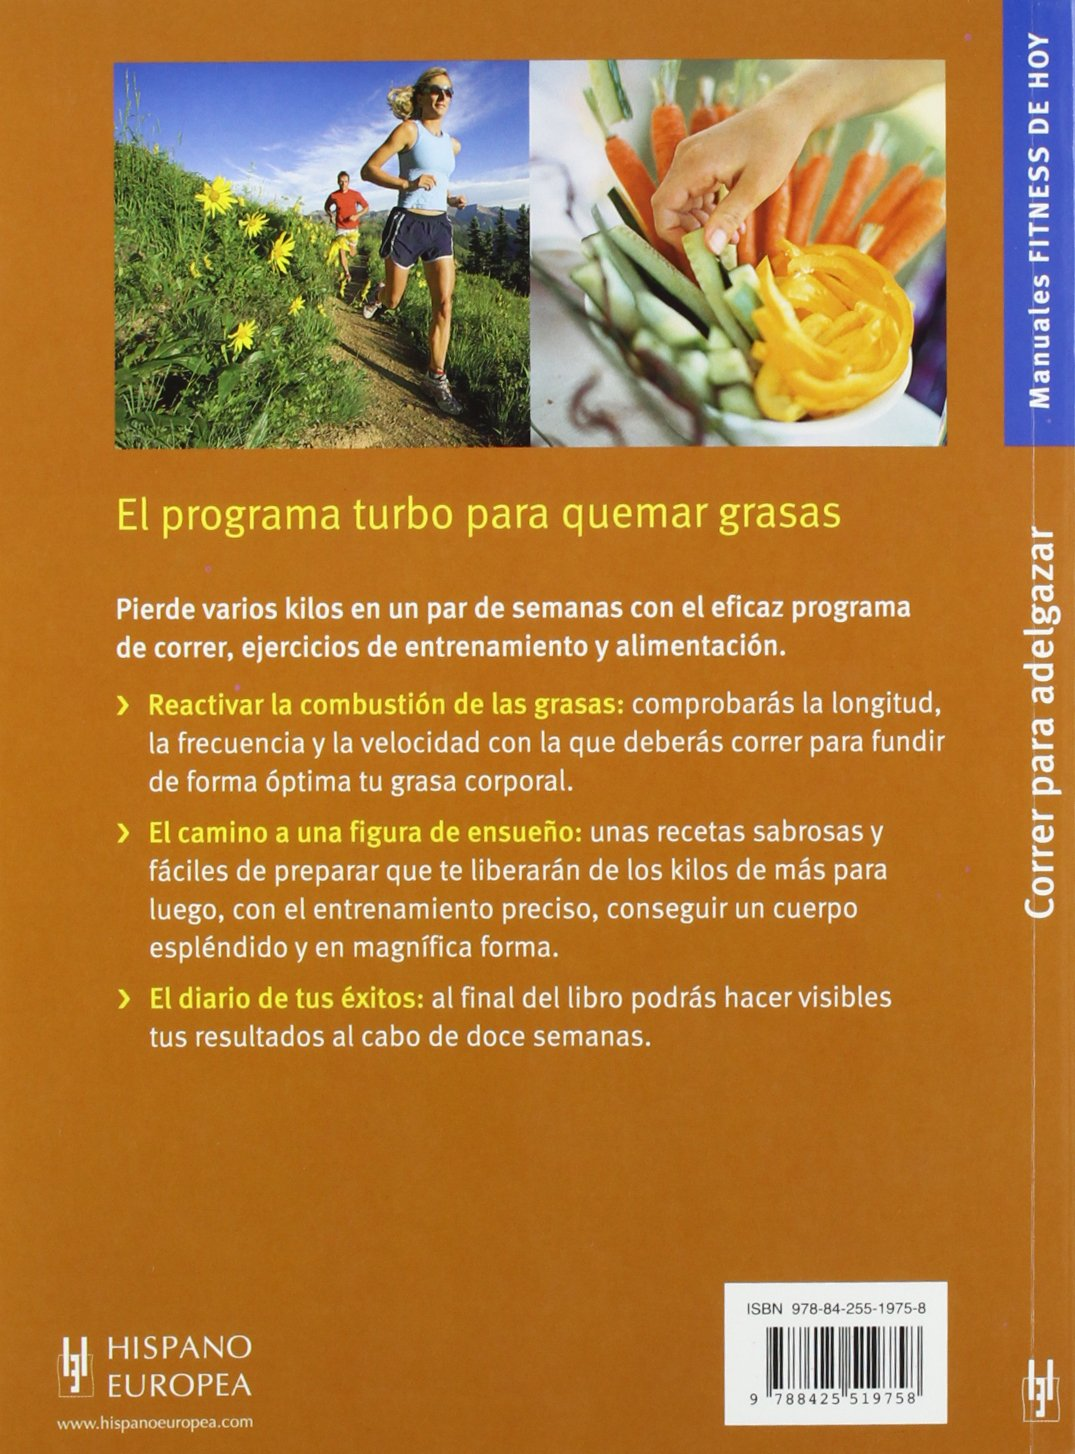 Correr para adelgazar (Fitness de hoy / Todays Fitness) (Spanish Edition): Markus Hederer: 9788425519758: Amazon.com: Books